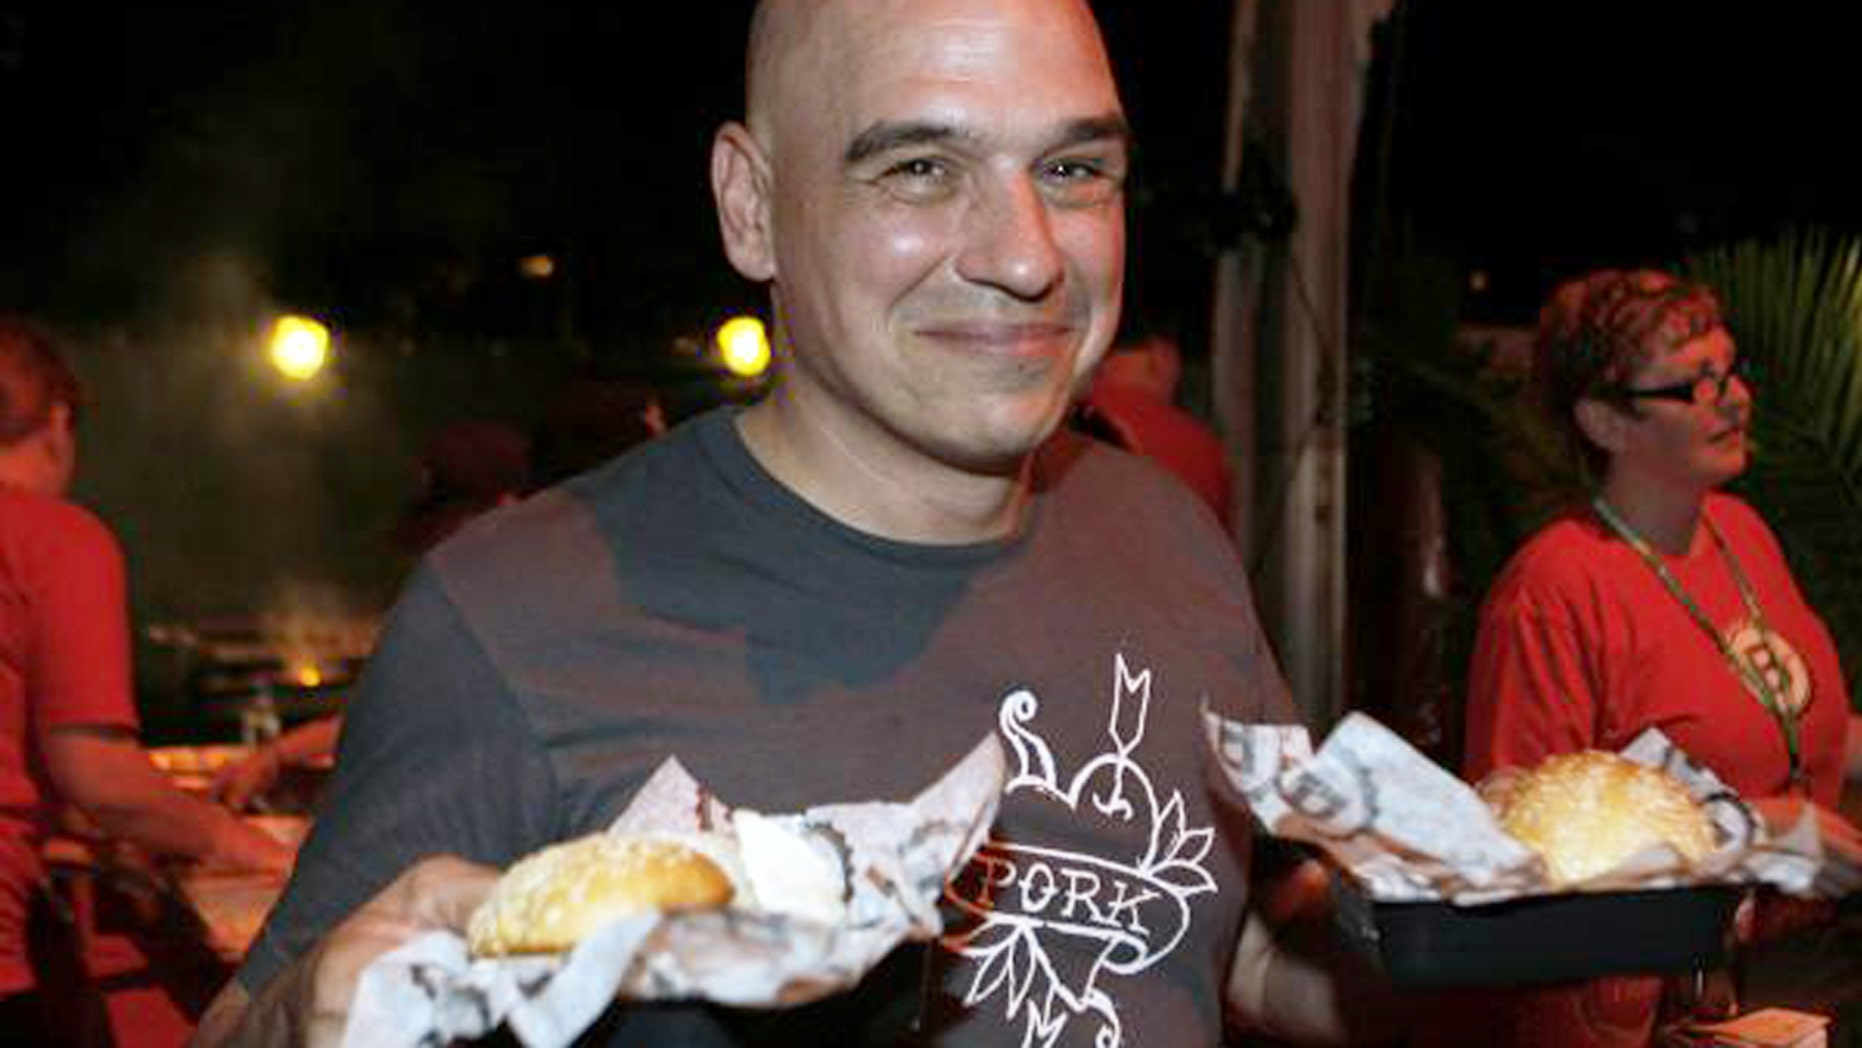 Chef Michael Symon is known for his love of meat.